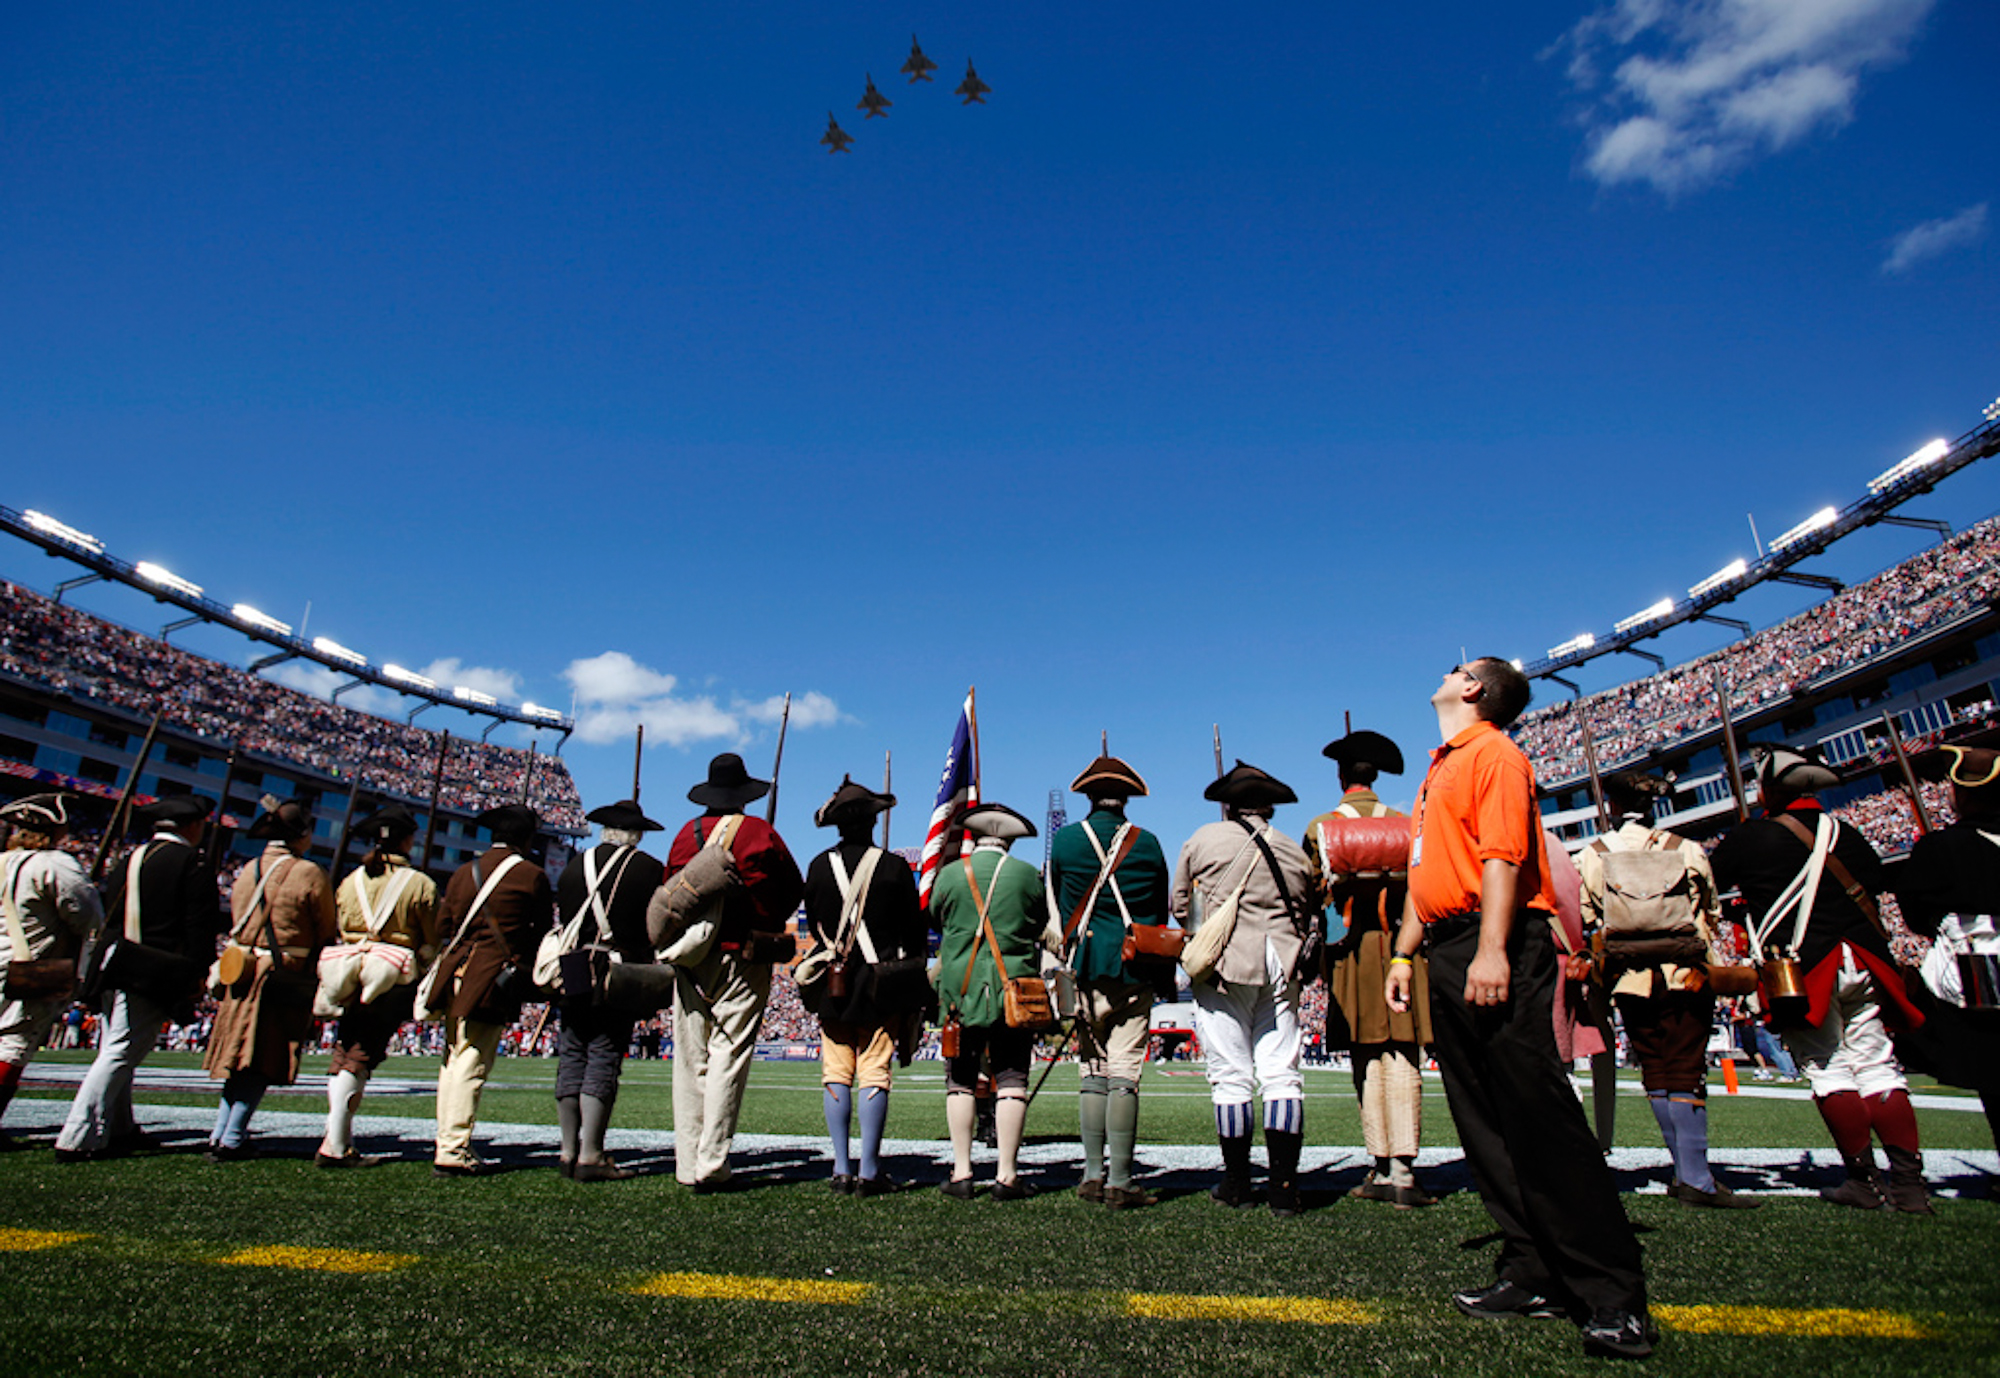 A Gillette Stadium security detail watches jets flown by the Massachusetts Air National Guard as they perform a fly over of the stadium before the game between the Arizona Cardinals and New England Patriots in Foxboro, Massachusetts on September 16, 2012. The Cardinals defeated the Patriots 20-18.